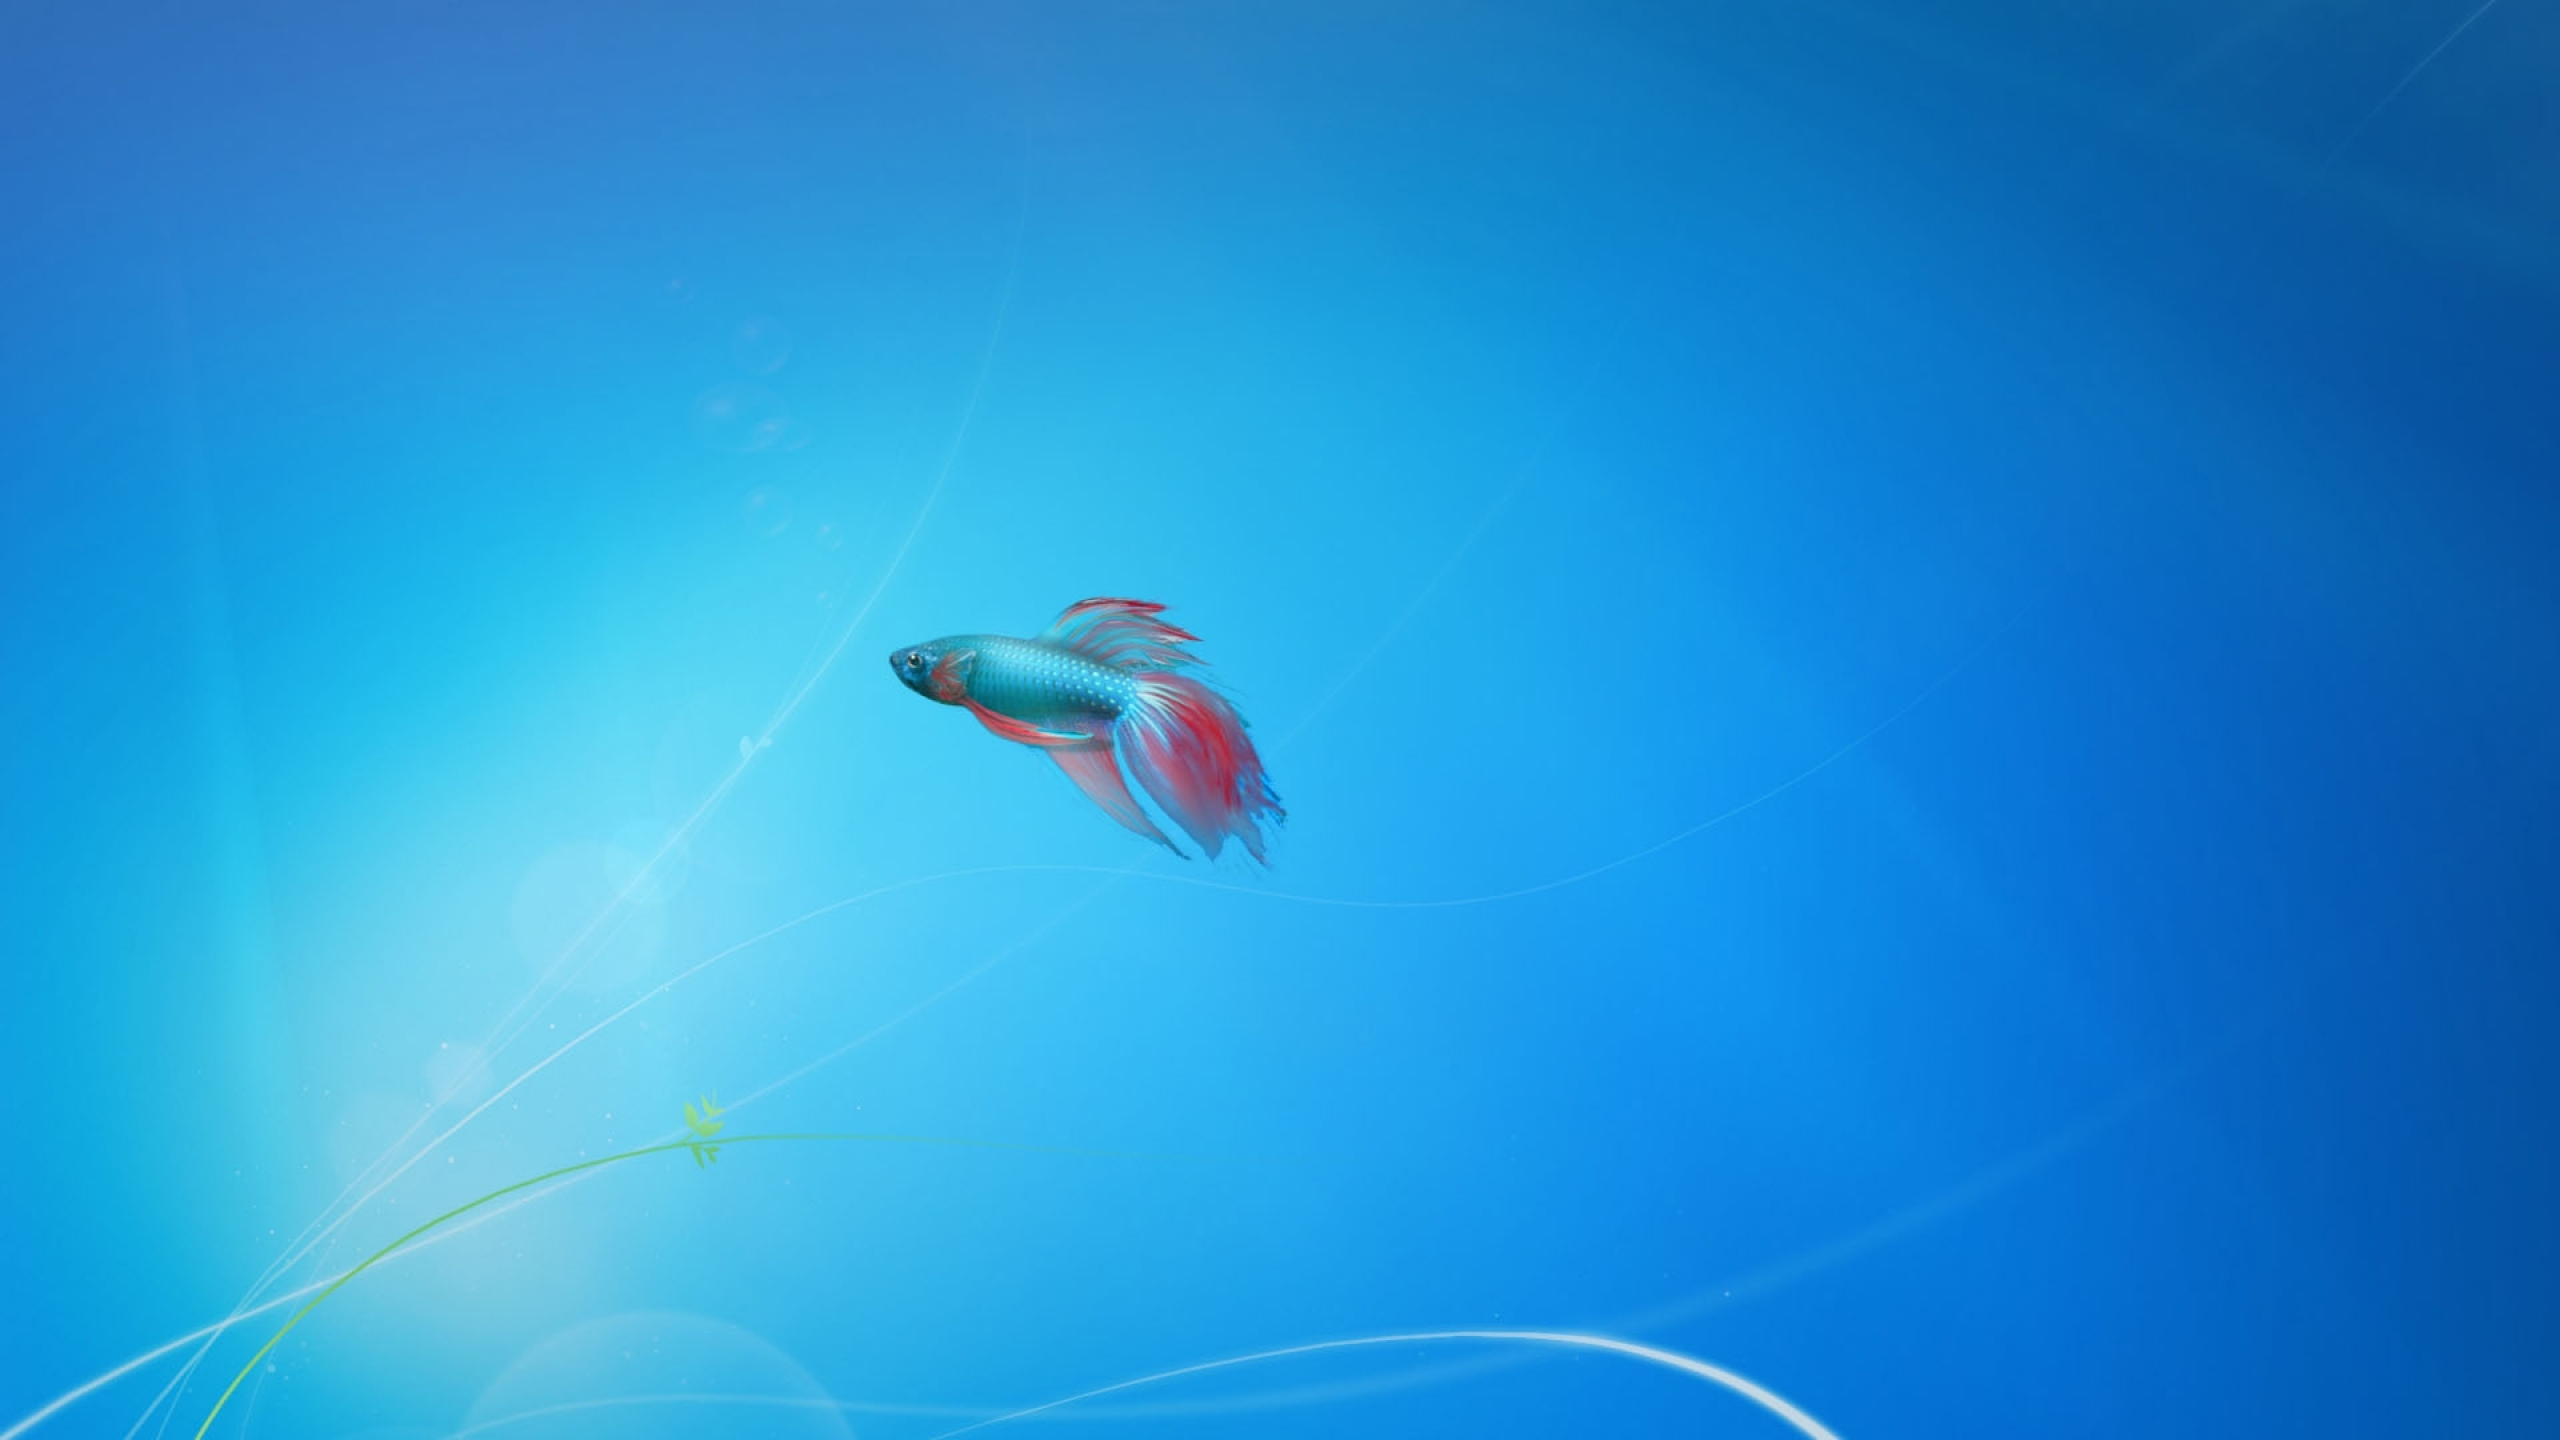 Related Pictures beta fish windows 7 wallpaper 1024x1024 wallpapers 2560x1440